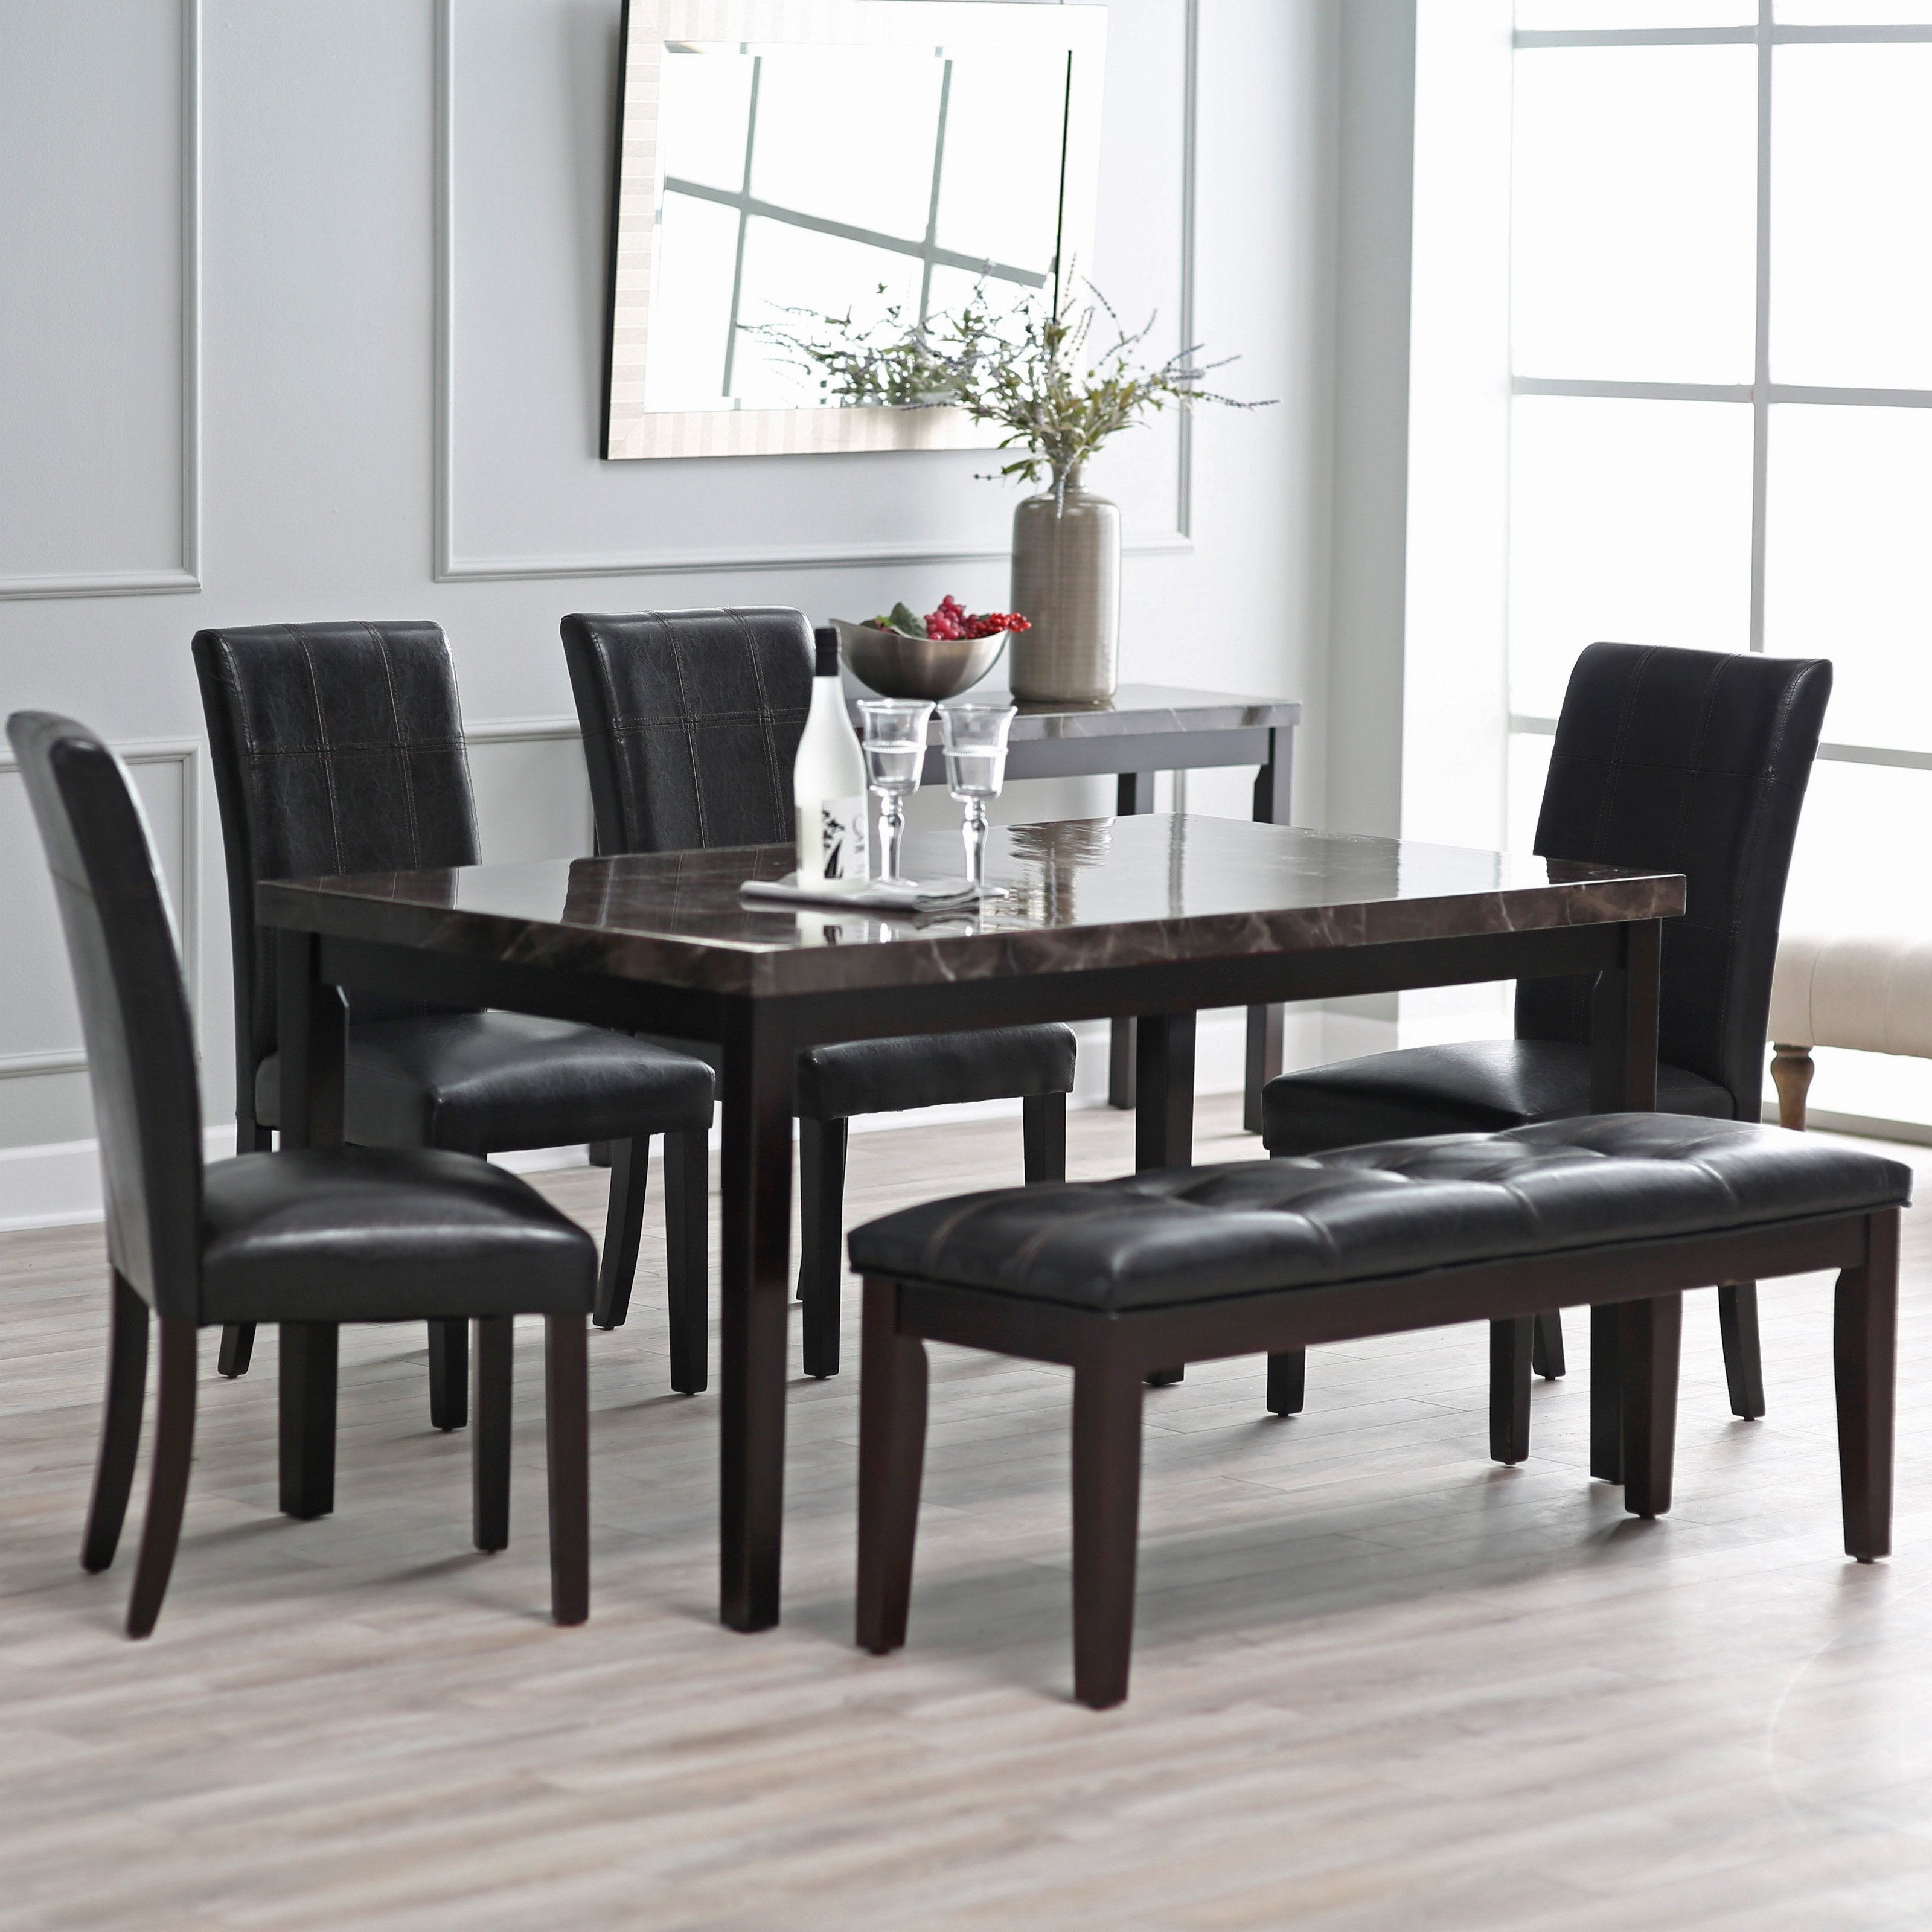 Dining Tables Sets With Most Recent Finley Home Milano 6 Piece Dining Table Set (View 5 of 25)